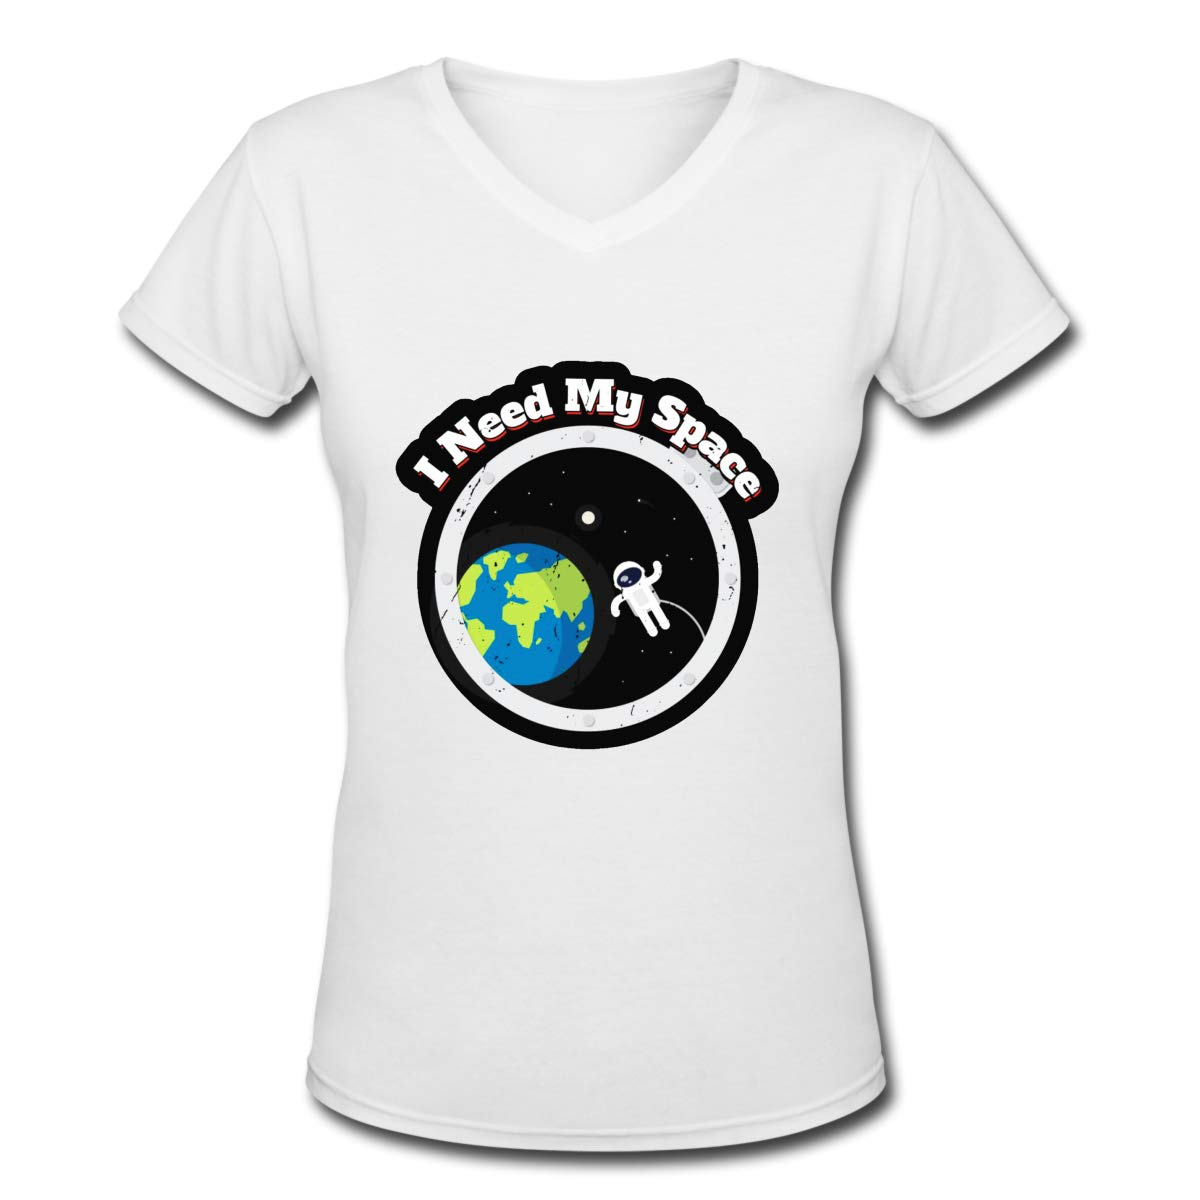 I Need My Space Womens T Shirt Casual Cotton Short Sleeve V-Neck Graphic T-Shirt Tops Tees